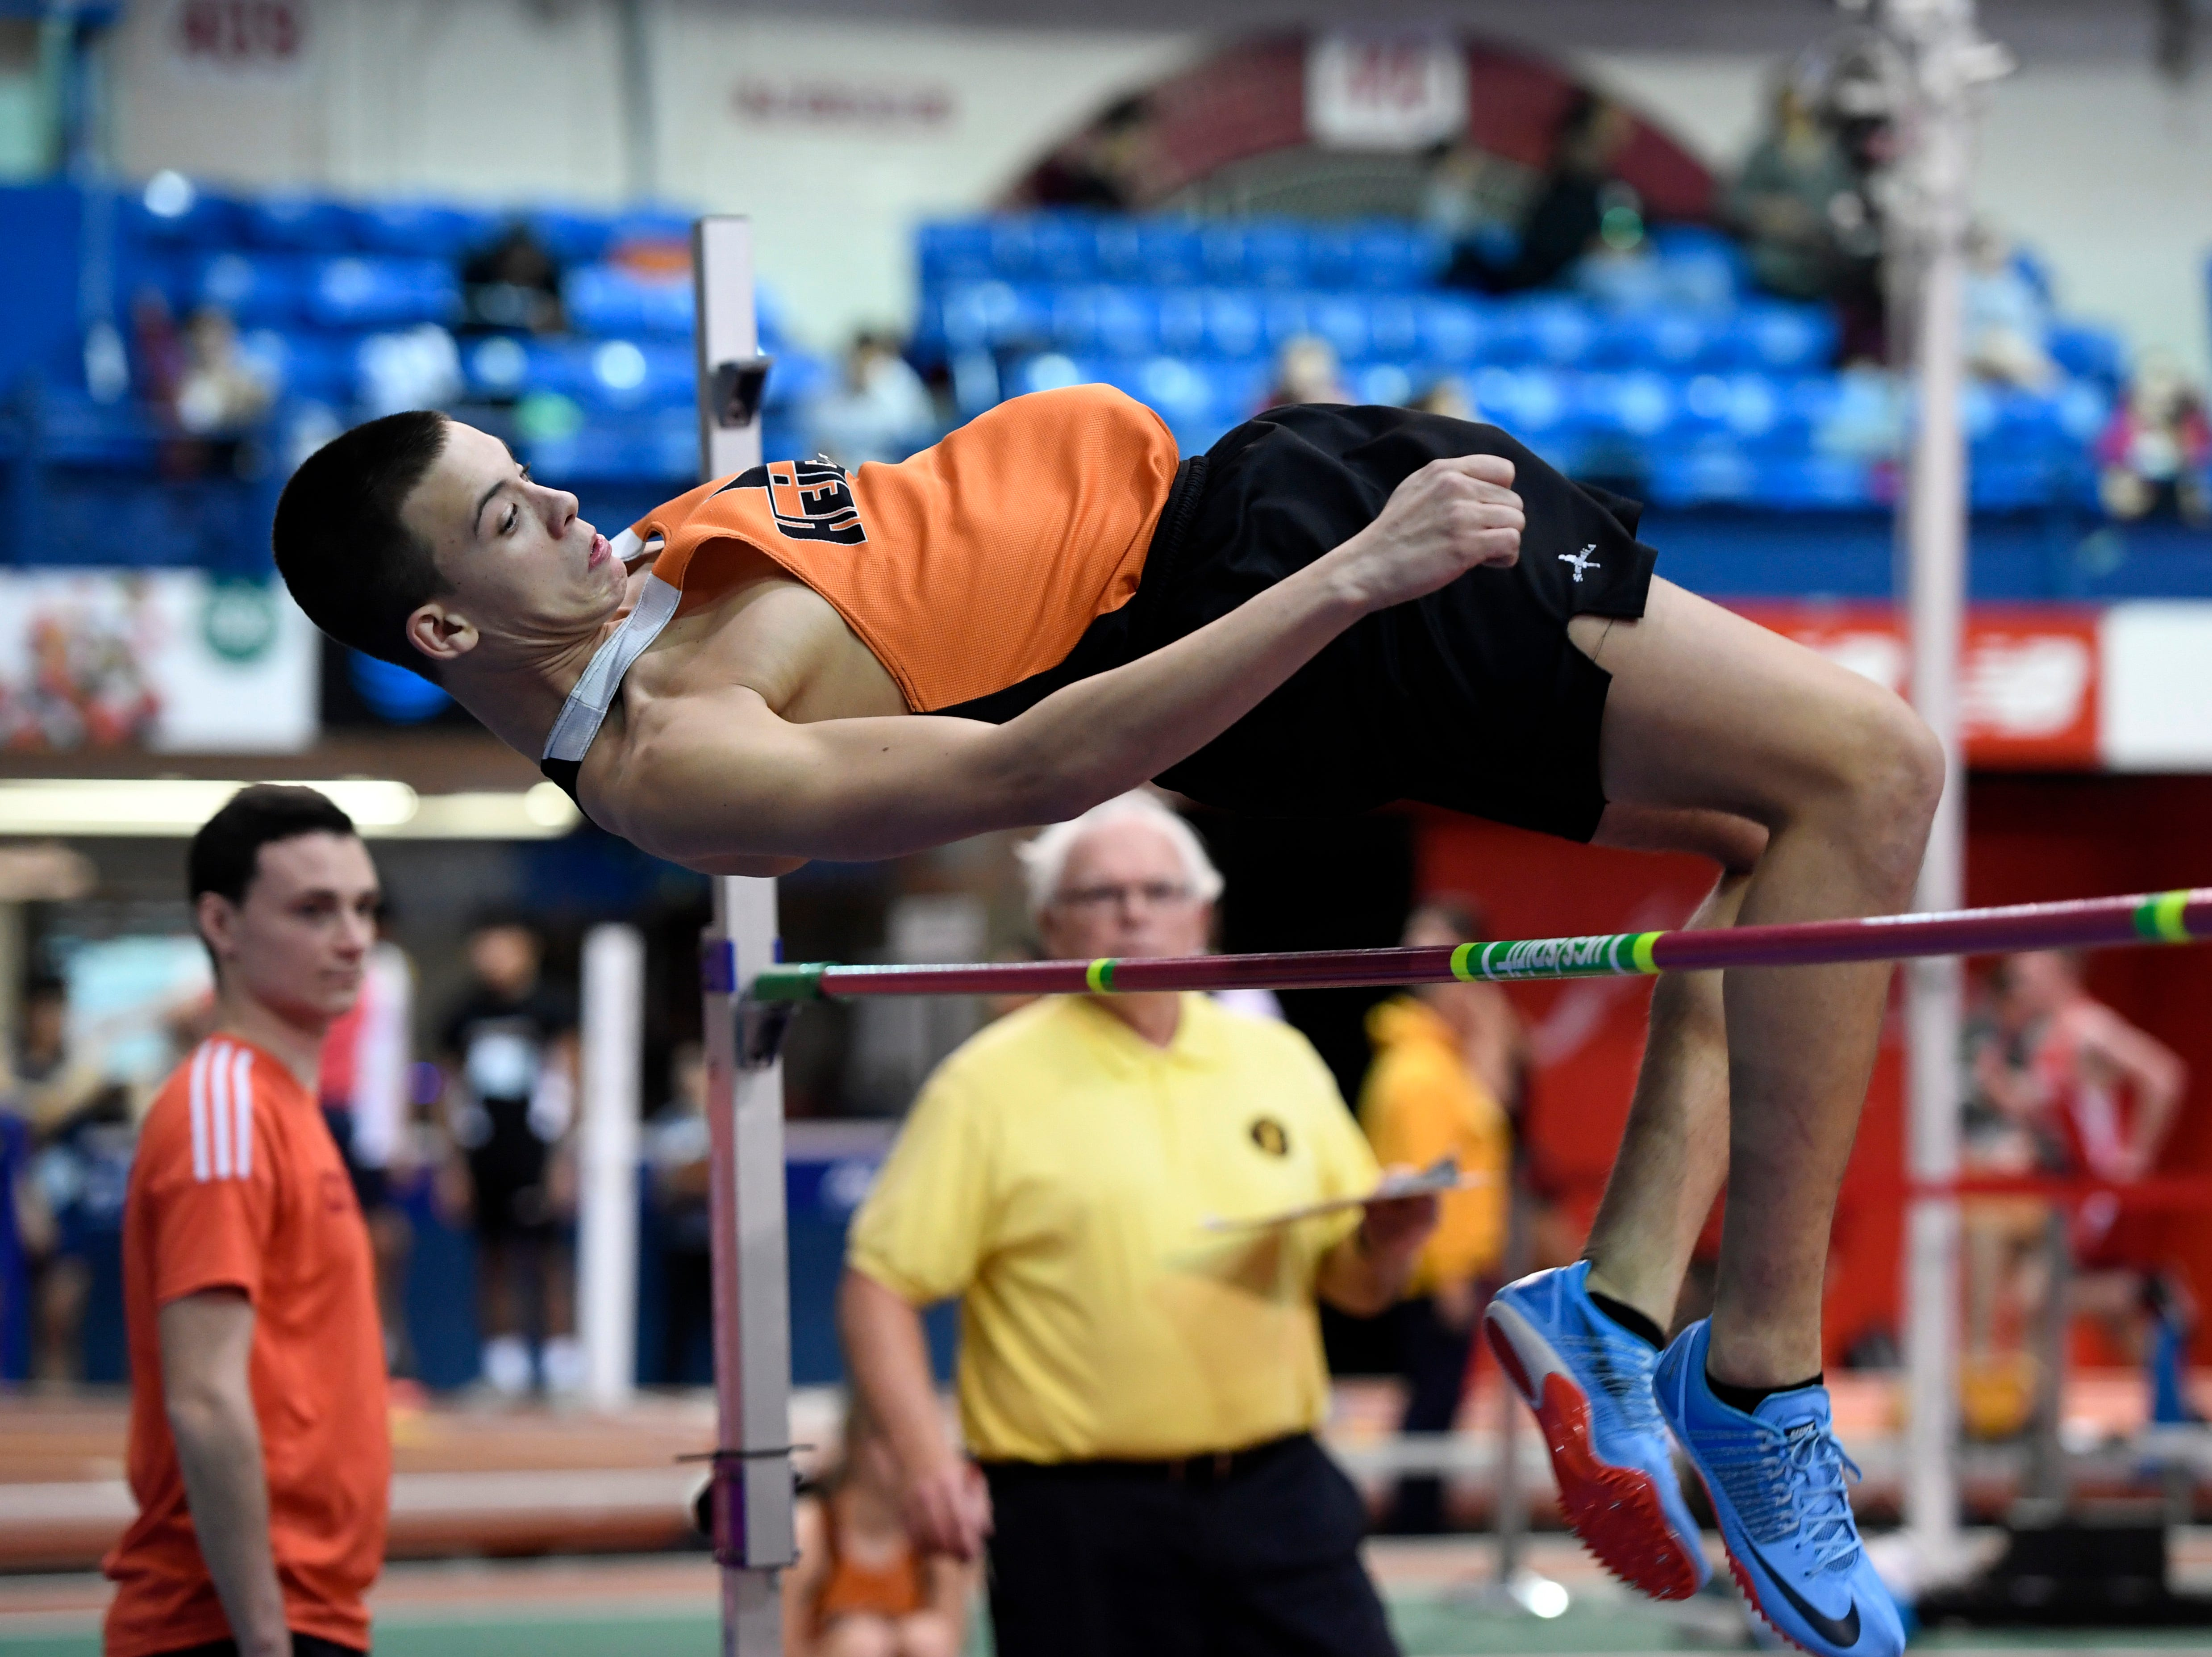 Vincent Sedlemier of Hasbrouck Heights competes in the high jump during the NJIC track meet at the Armory Track on Monday, Jan. 7, 2019, in New York.